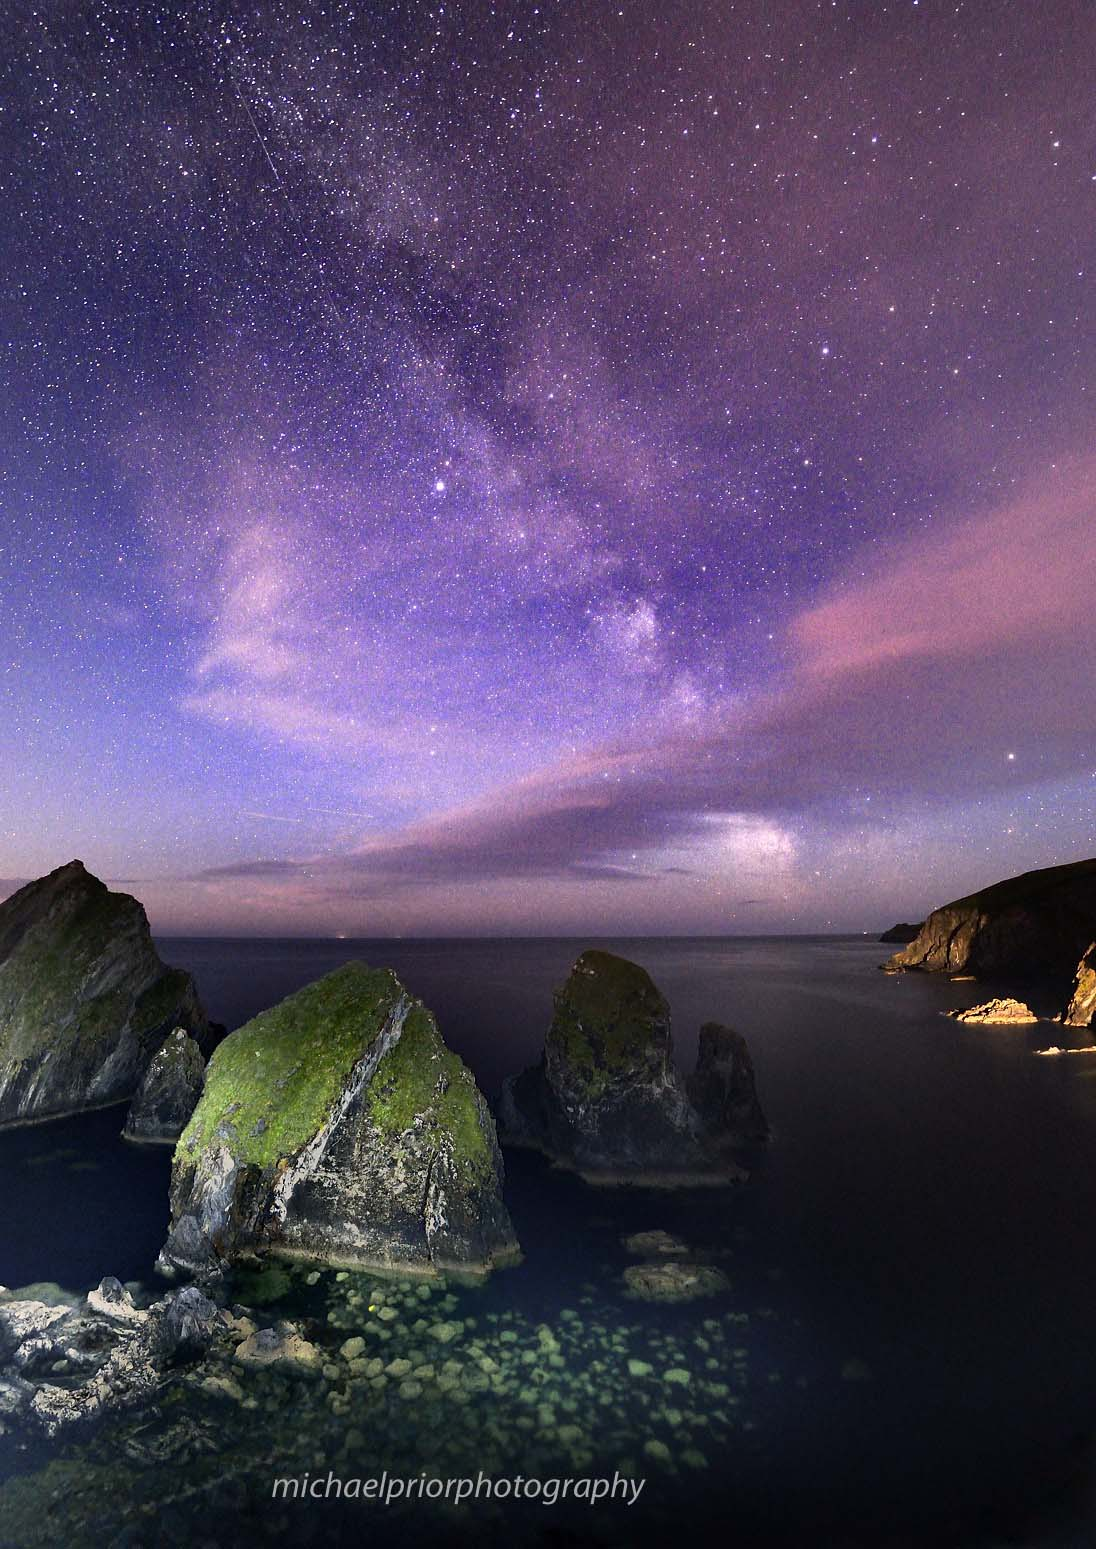 Nohoval cove and the milky way - Michael Prior Photography